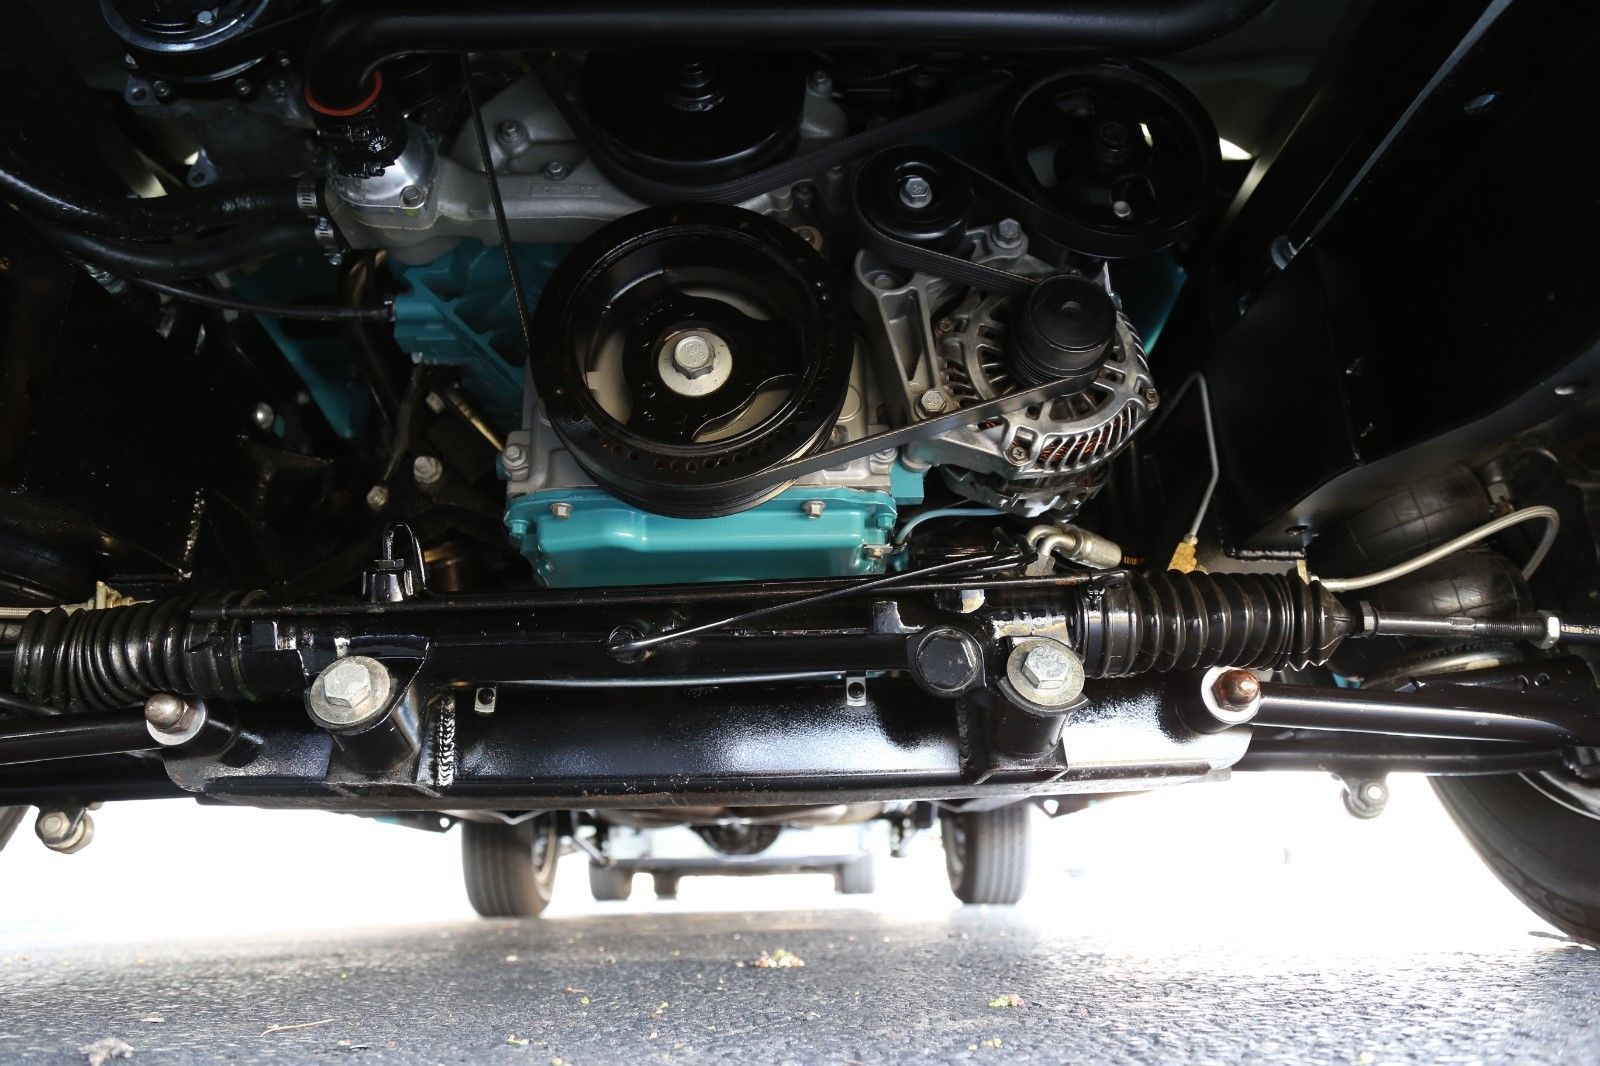 For Sale Ford F 100 With A Ls2 V8 Engine Swap Depot Wiring Harness Ebay Source Esd May Earn Commisions When Product Is Purchased From This Link